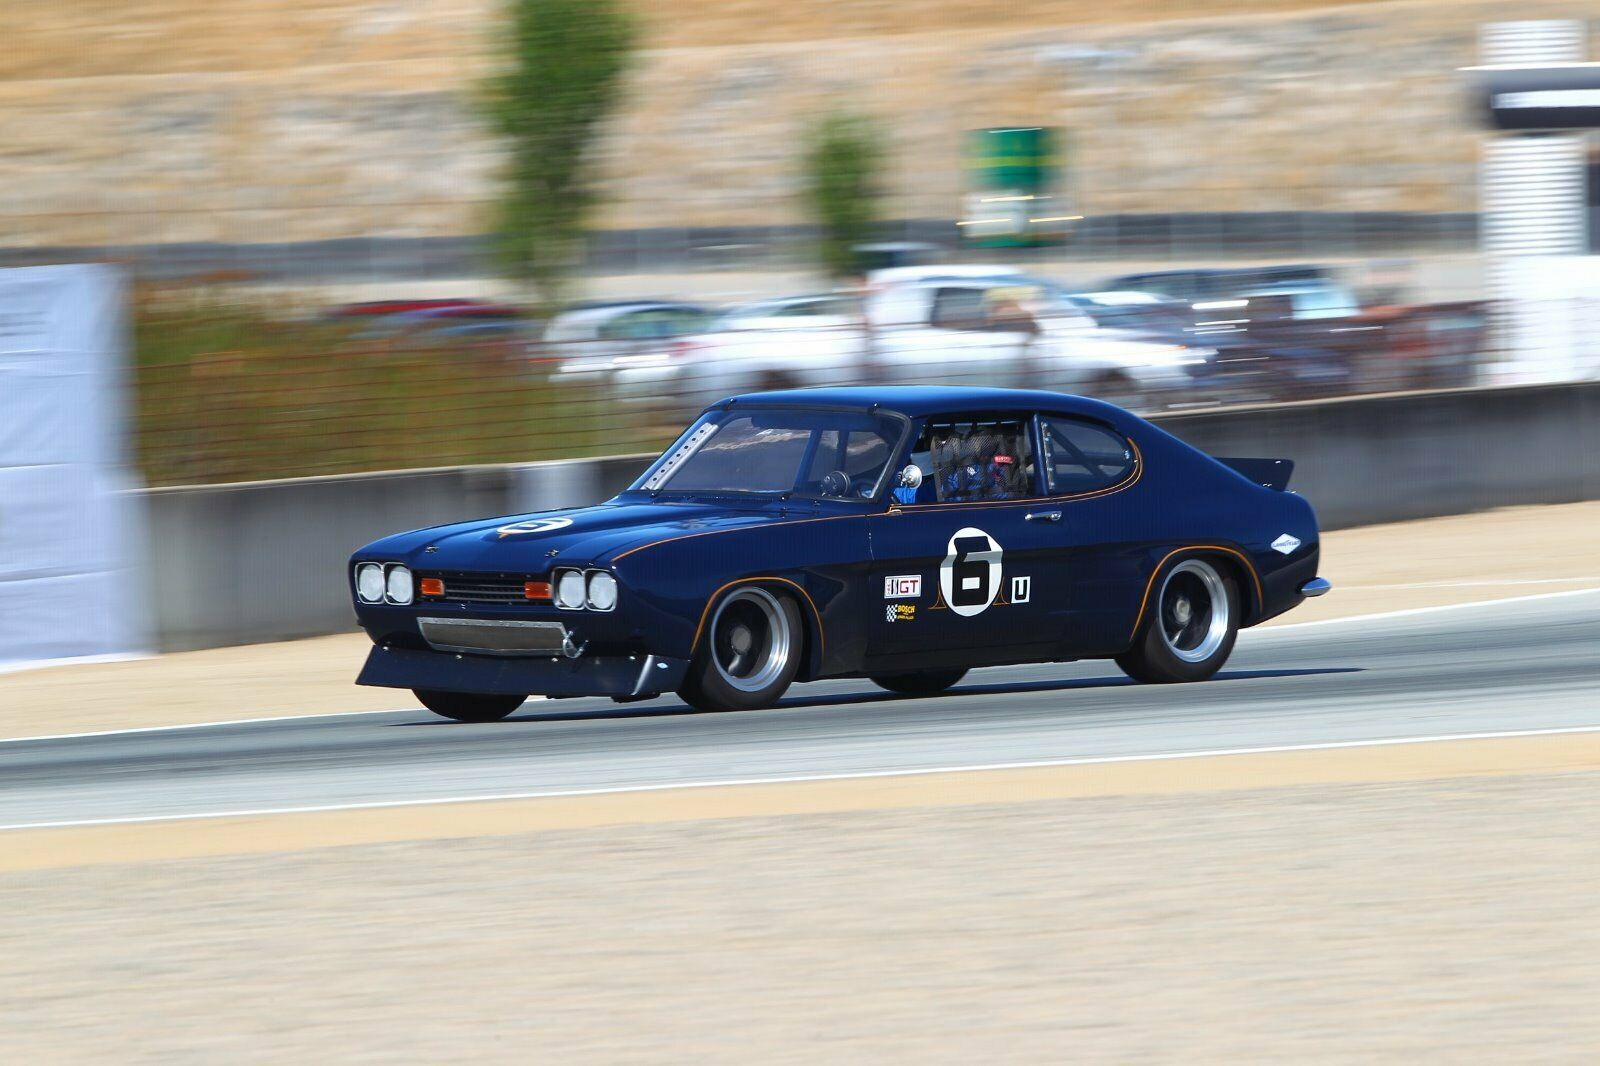 Not A Mustang: This 1973 Ford Capri Road Racer Is Dare To Be Different Heaven!